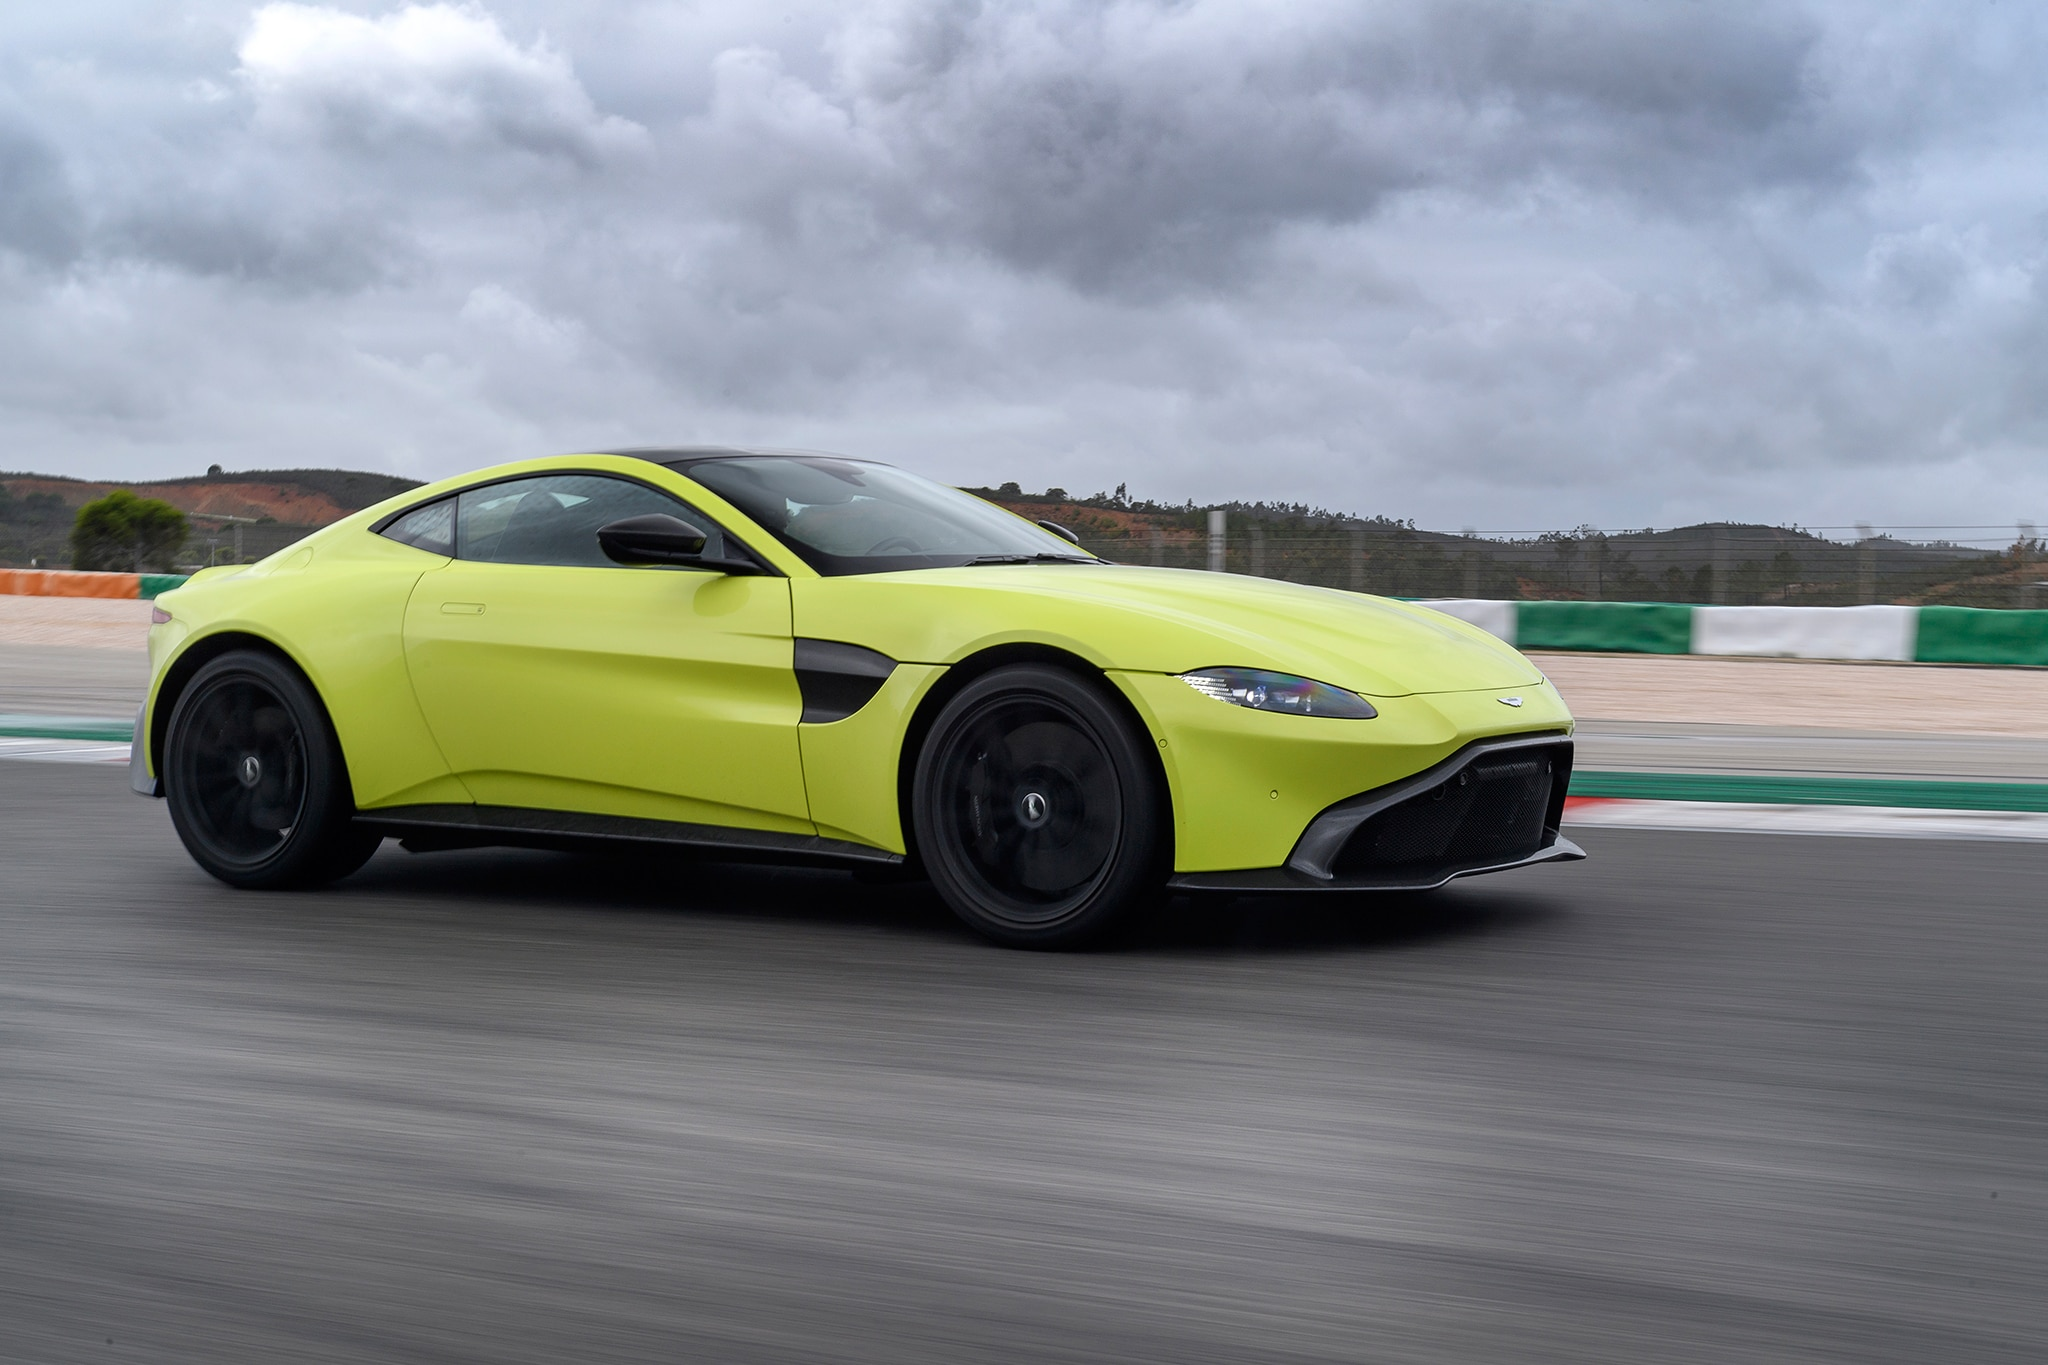 2019 aston martin v8 vantage first drive review | automobile magazine